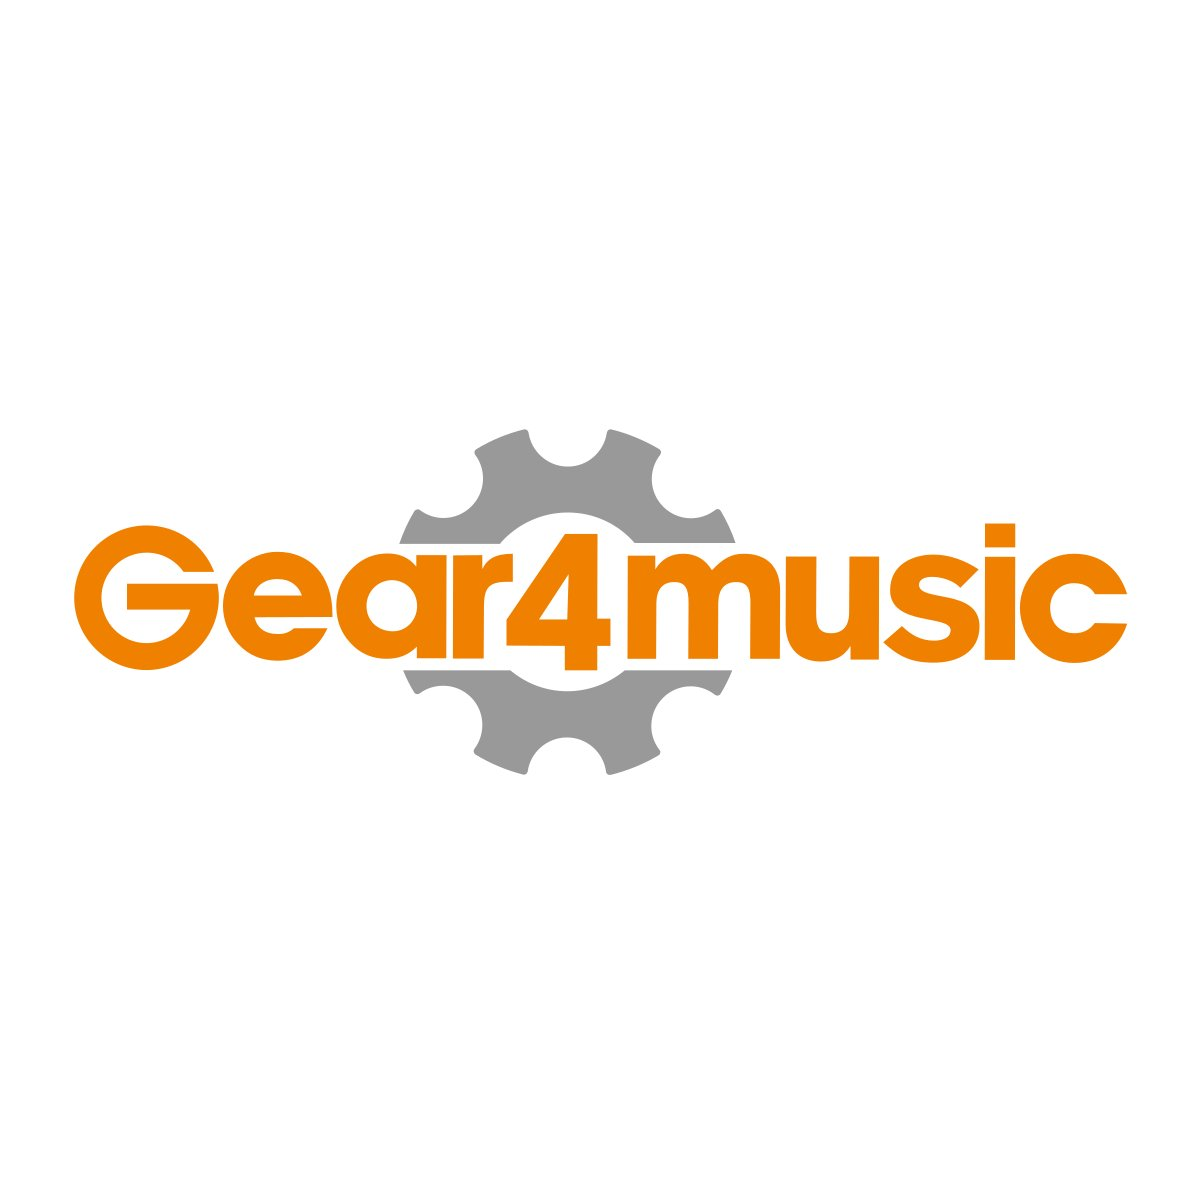 Nodestativ lys fra Gear4music, 2 LED